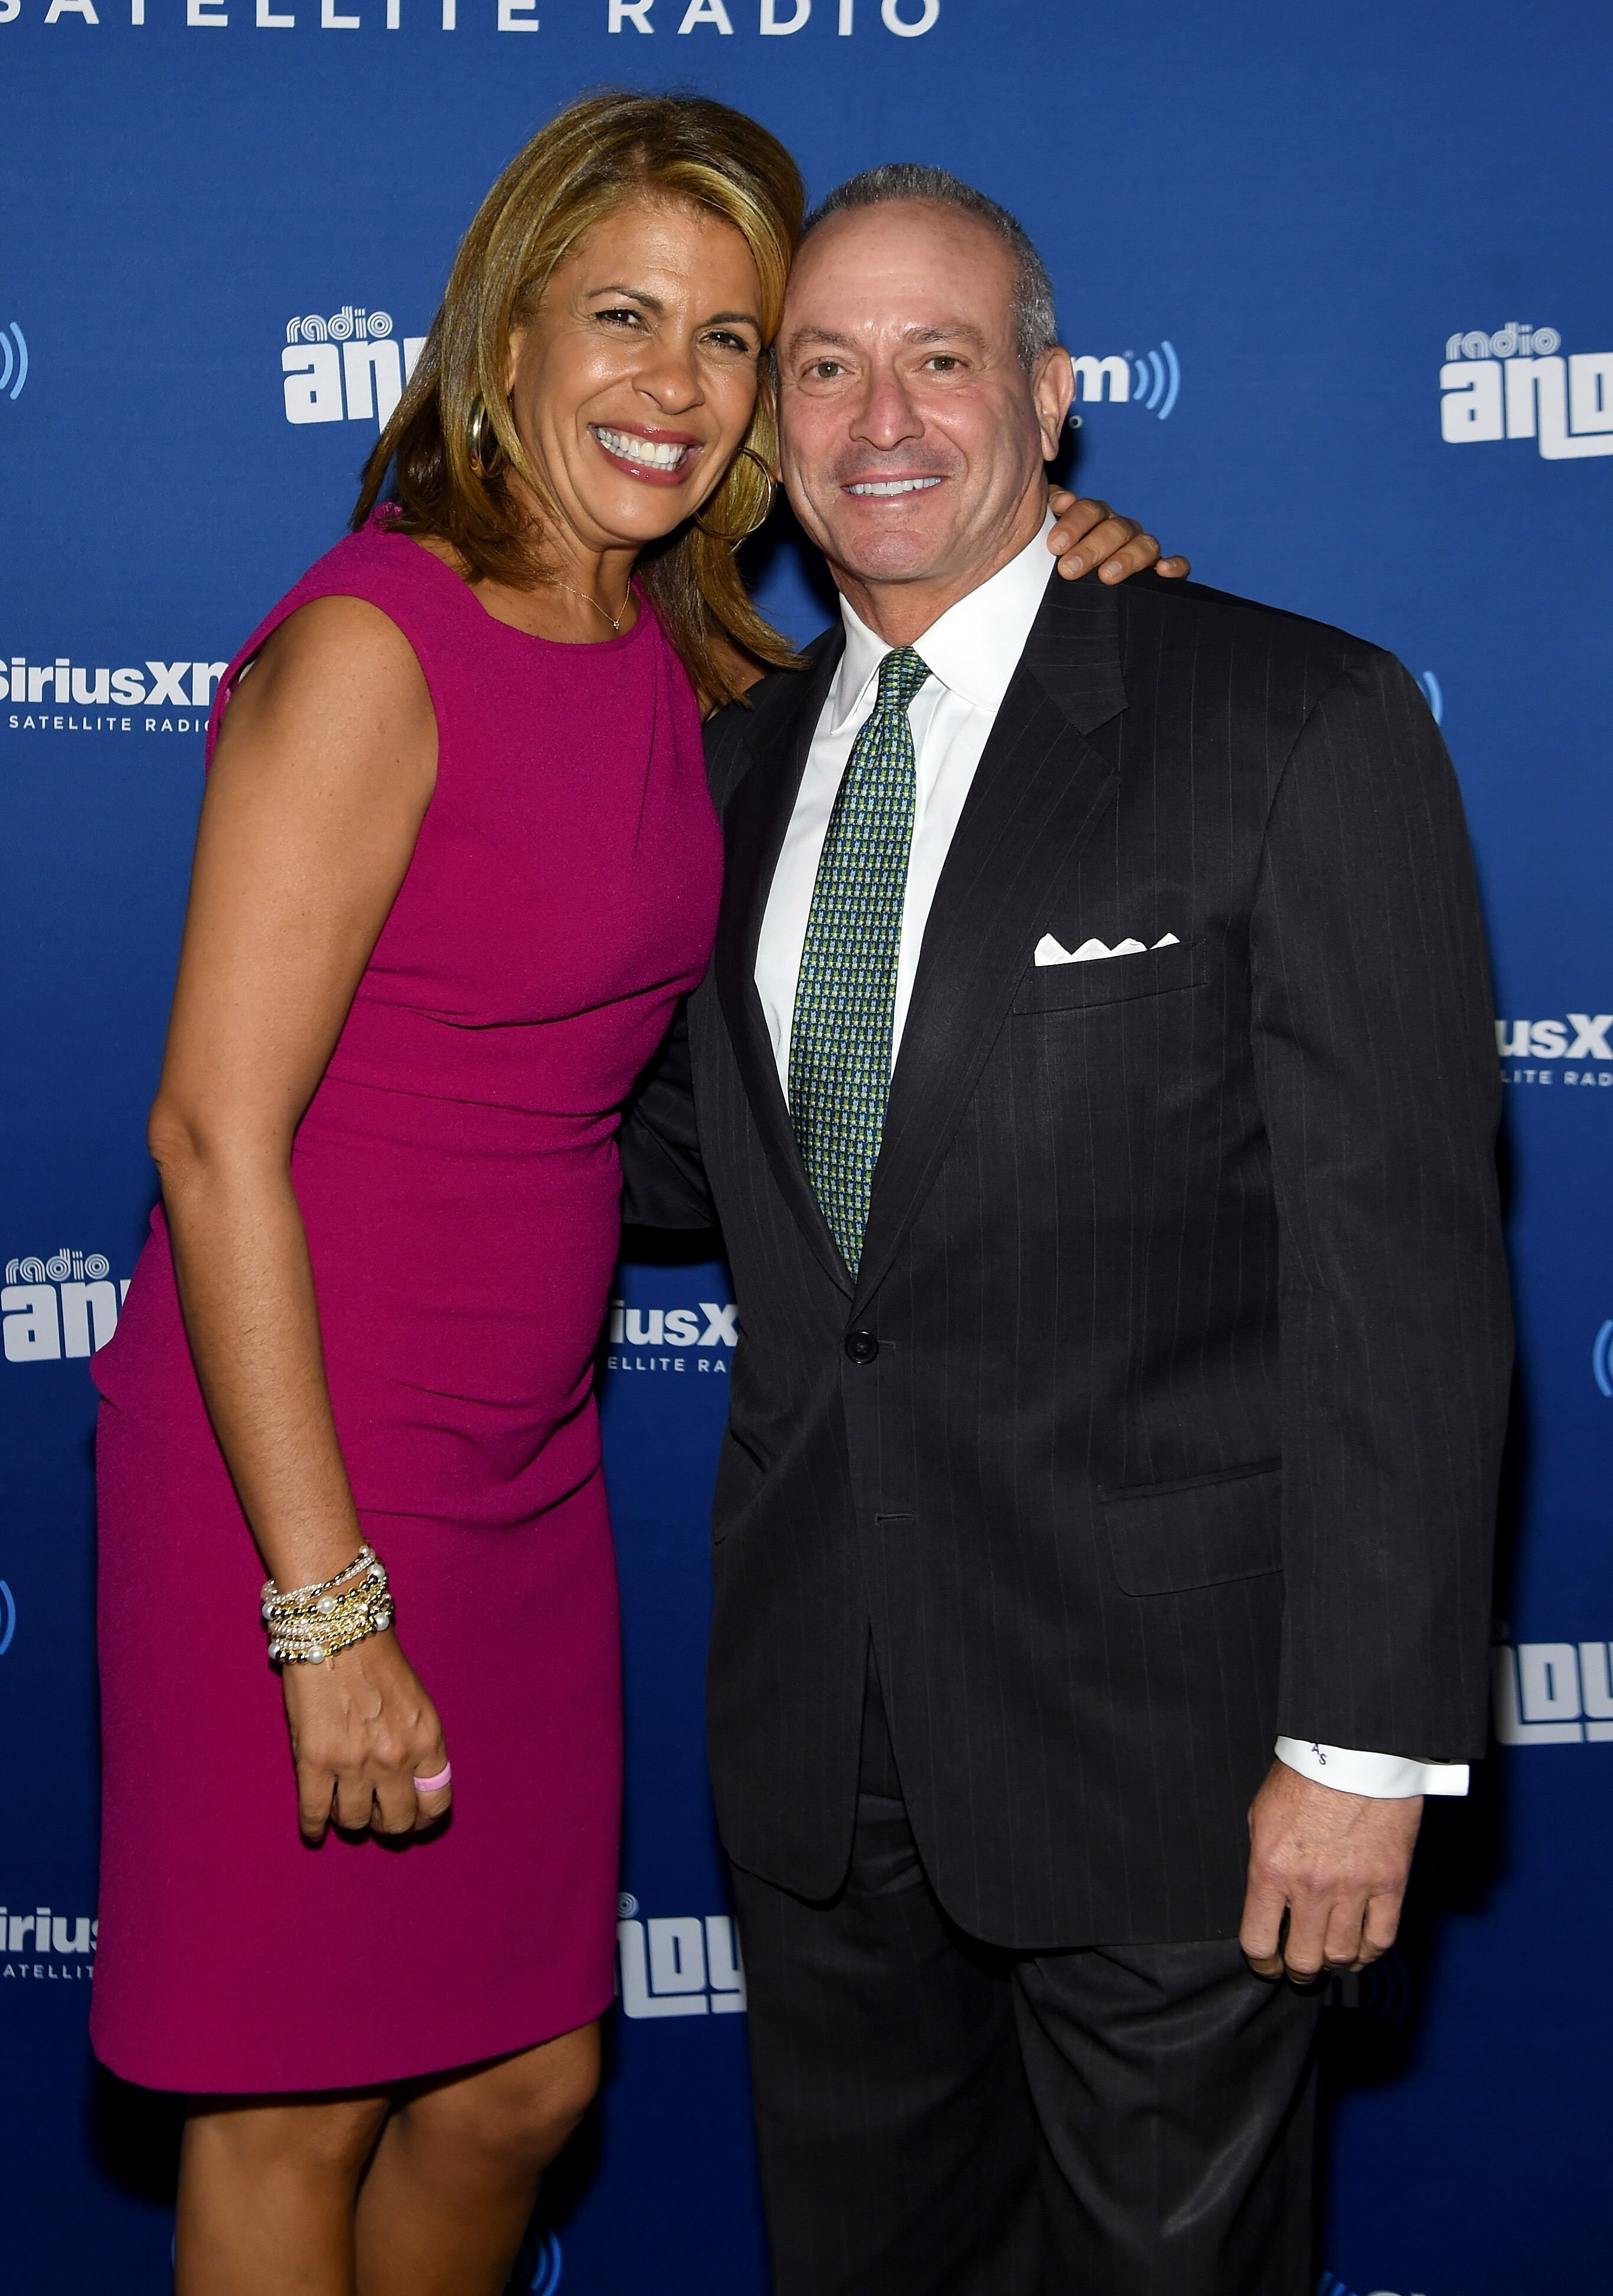 Hoda Kotb and Joel Schiffman at the new SiriusXM Channel launch on October 22, 2015. | Source: Getty Images